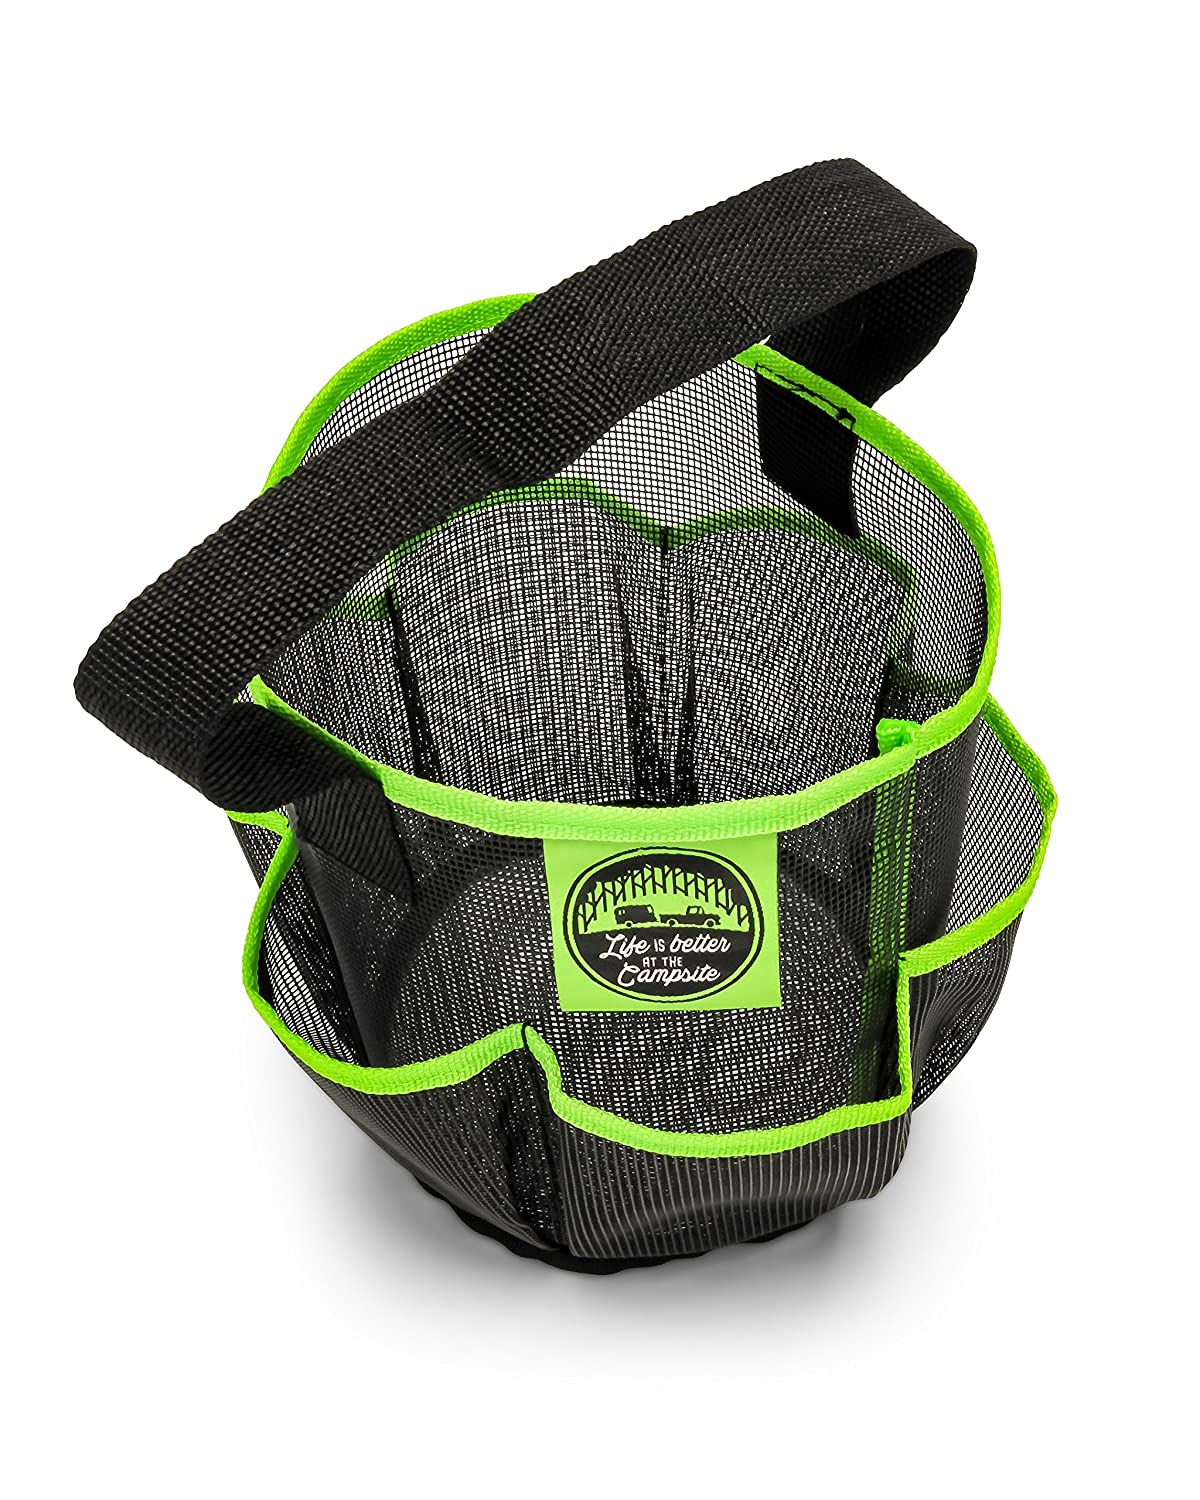 Gym Camco Mesh Shower Caddy Organizer Tote with Pockets and Carry Handle 51997 Dries Quick Organize Bathroom Toiletries and Products- Black Perfect for Dorms the Beach and Travel Camping